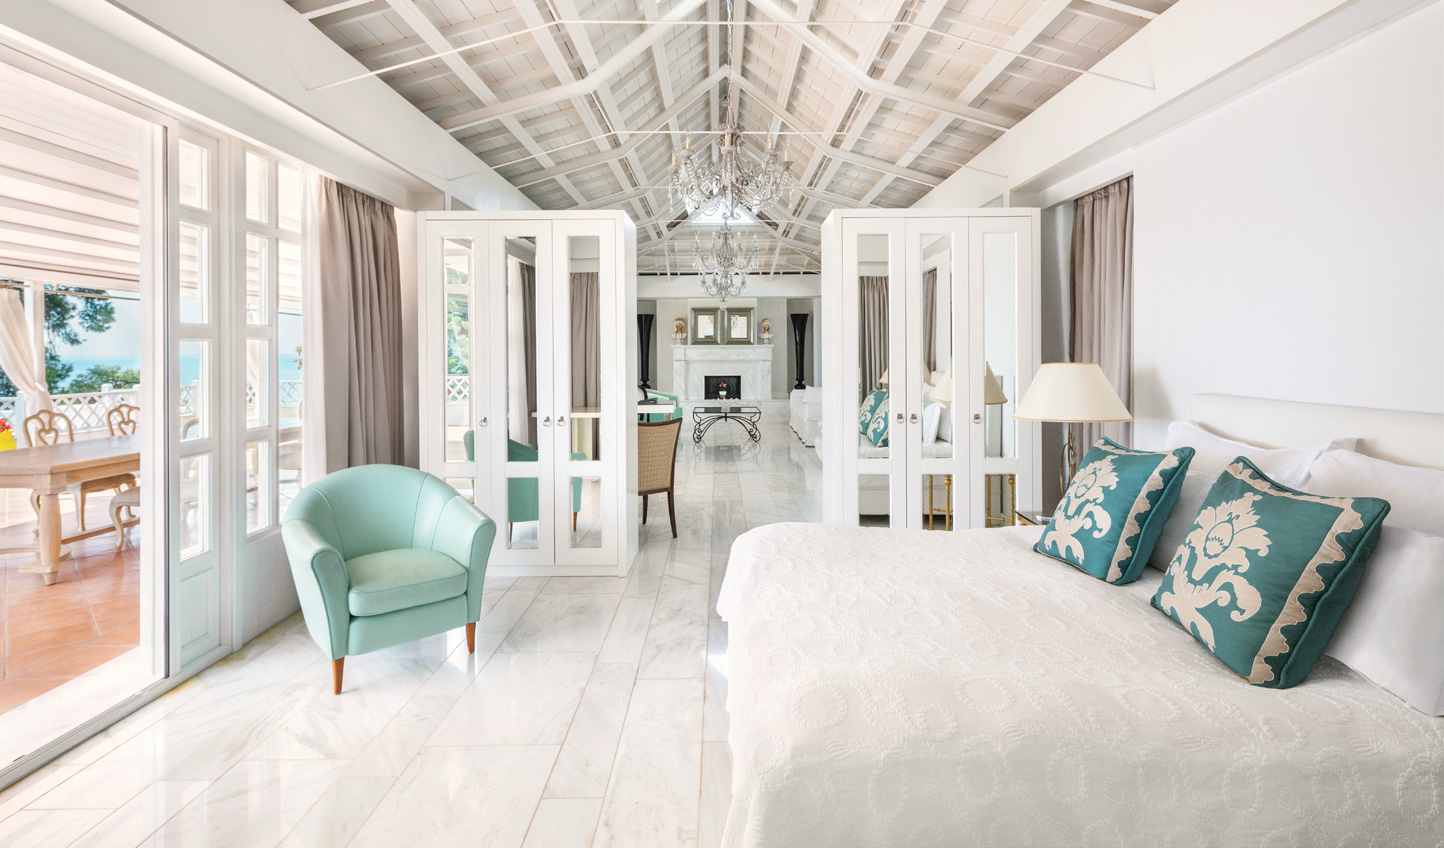 All white interiors are given a splash of Mediterranean blue